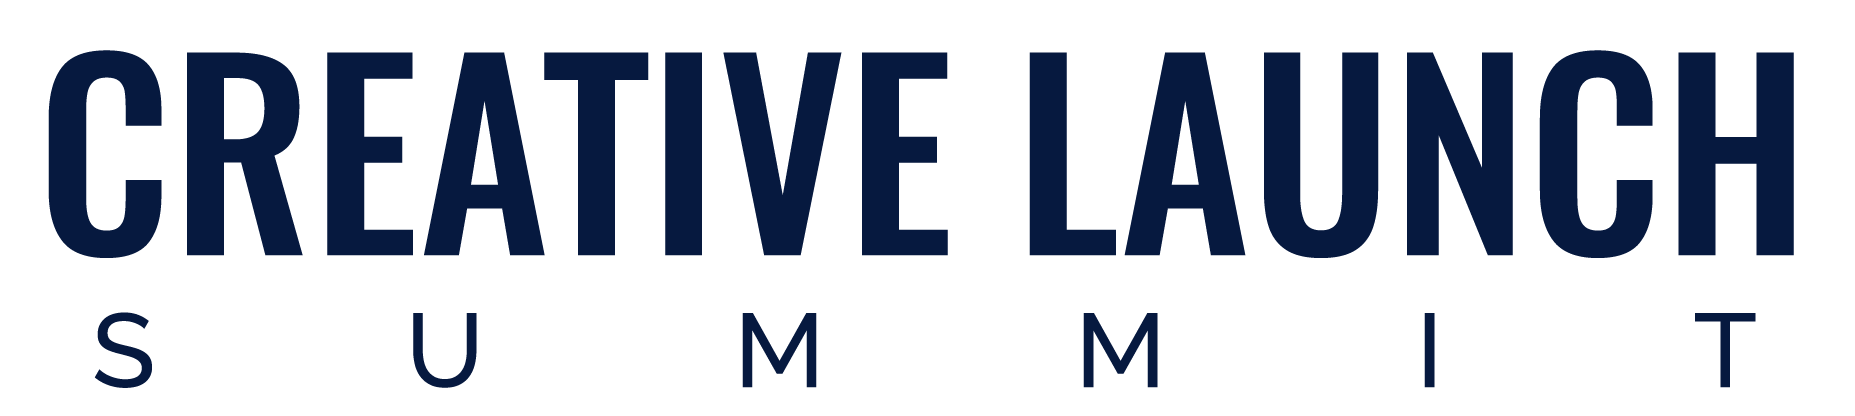 Creative-Launch-Summit-Badge-Navy.png